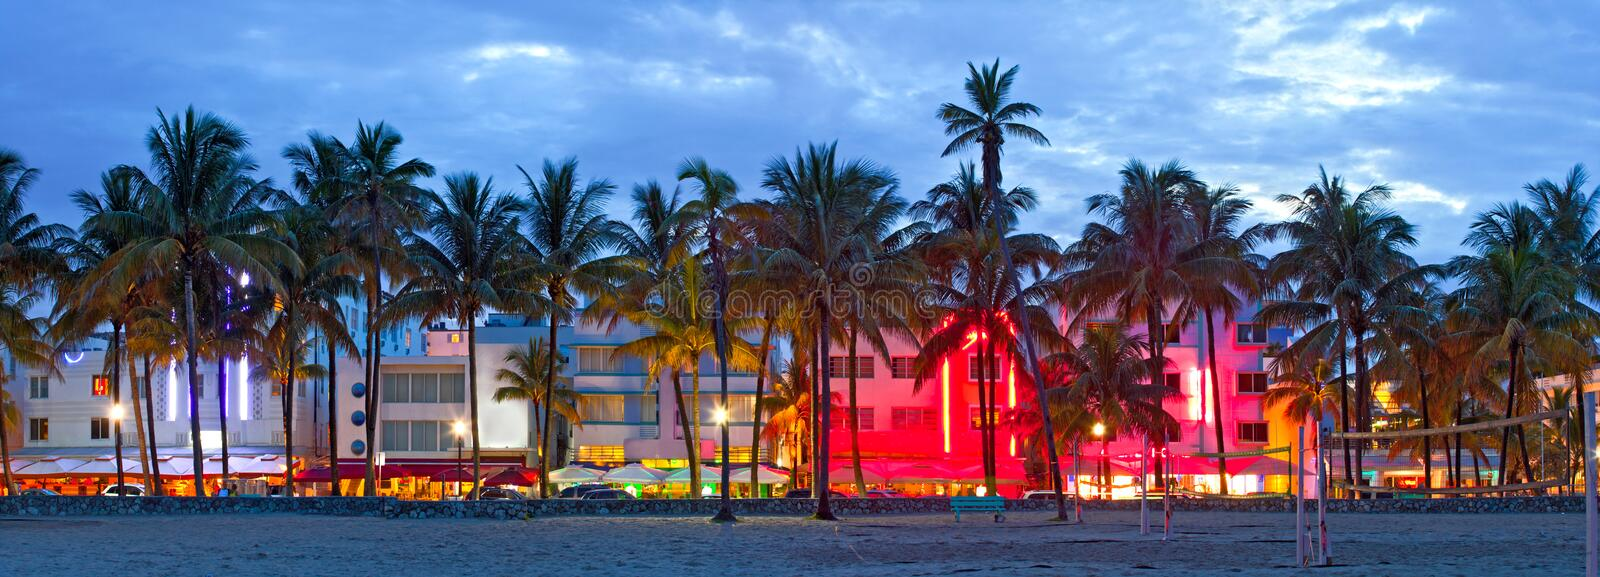 Miami Beach, Florida hotels and restaurants at sunset stock image